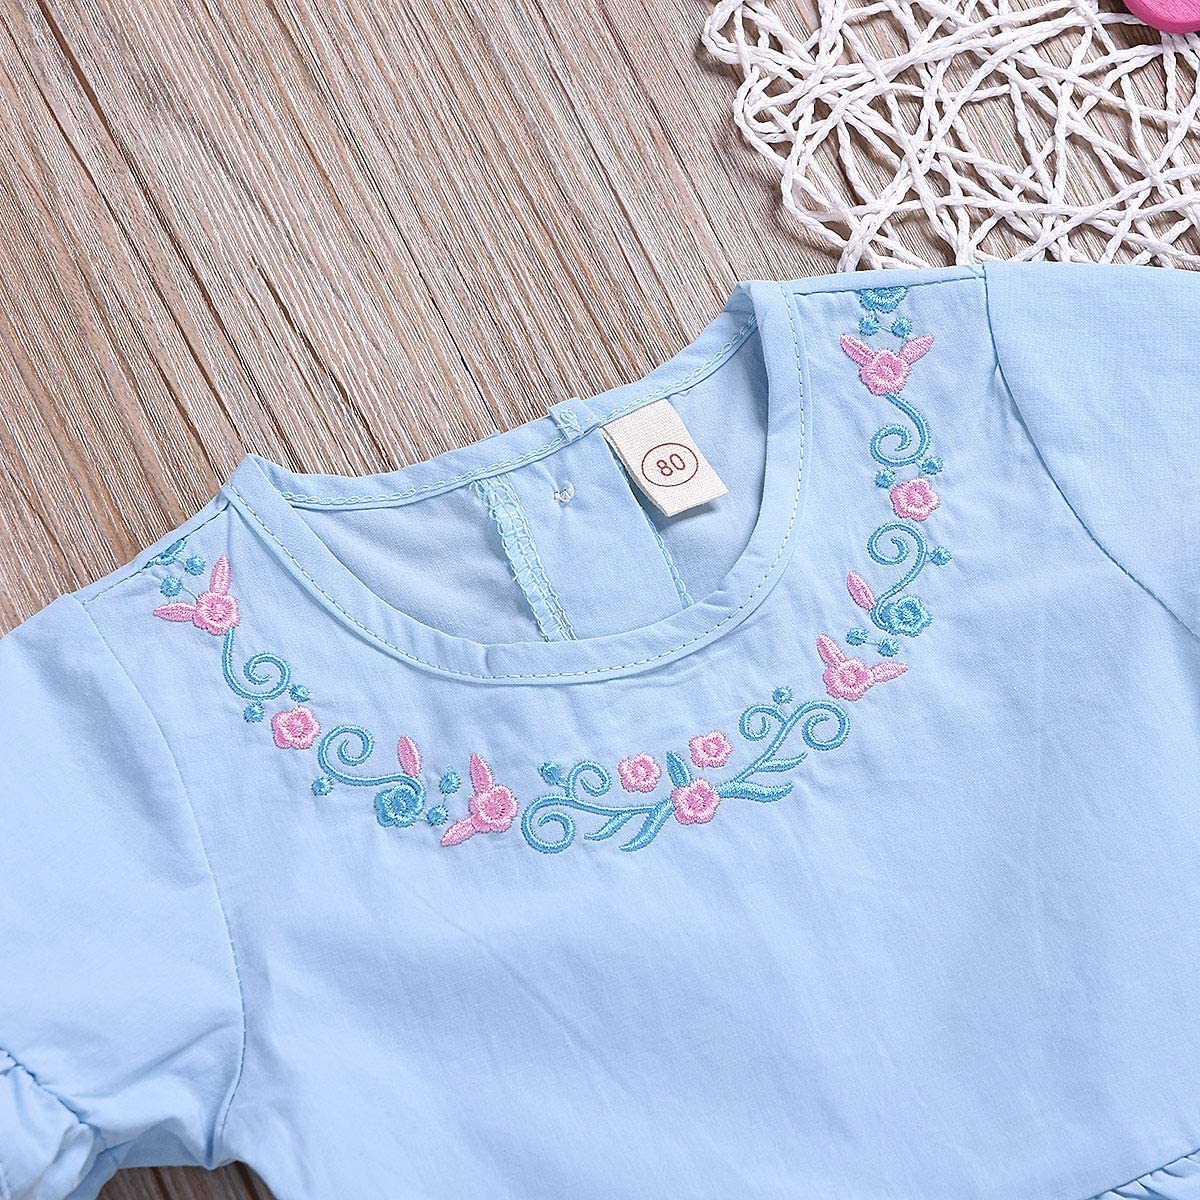 puseky Baby Girls Sisters Matching Dress Outfits Lace Ruffle Romper or Dress for Little Big Sister